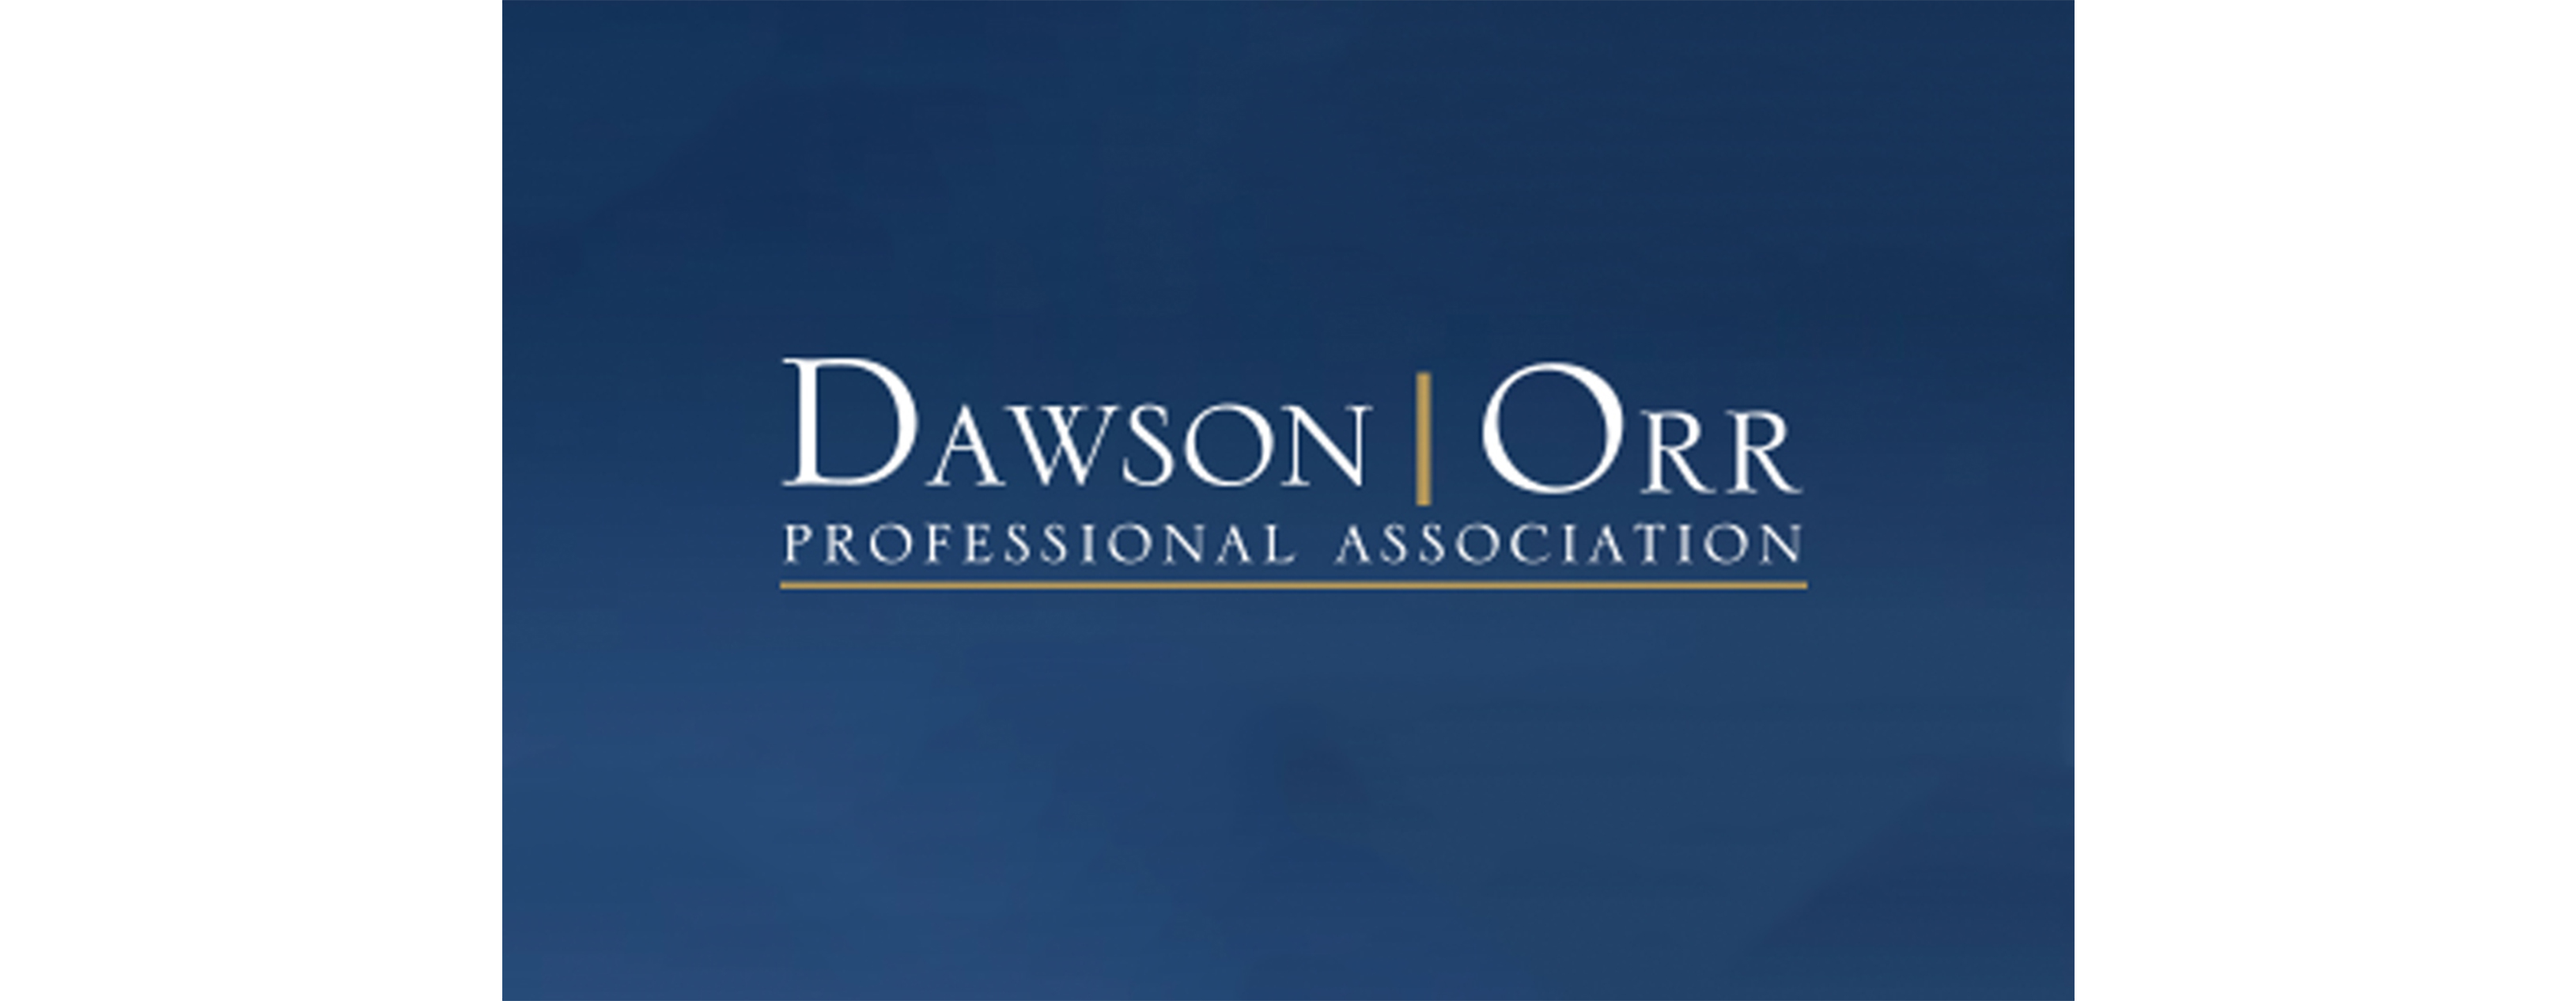 Dawson Orr logo in white on a blue background